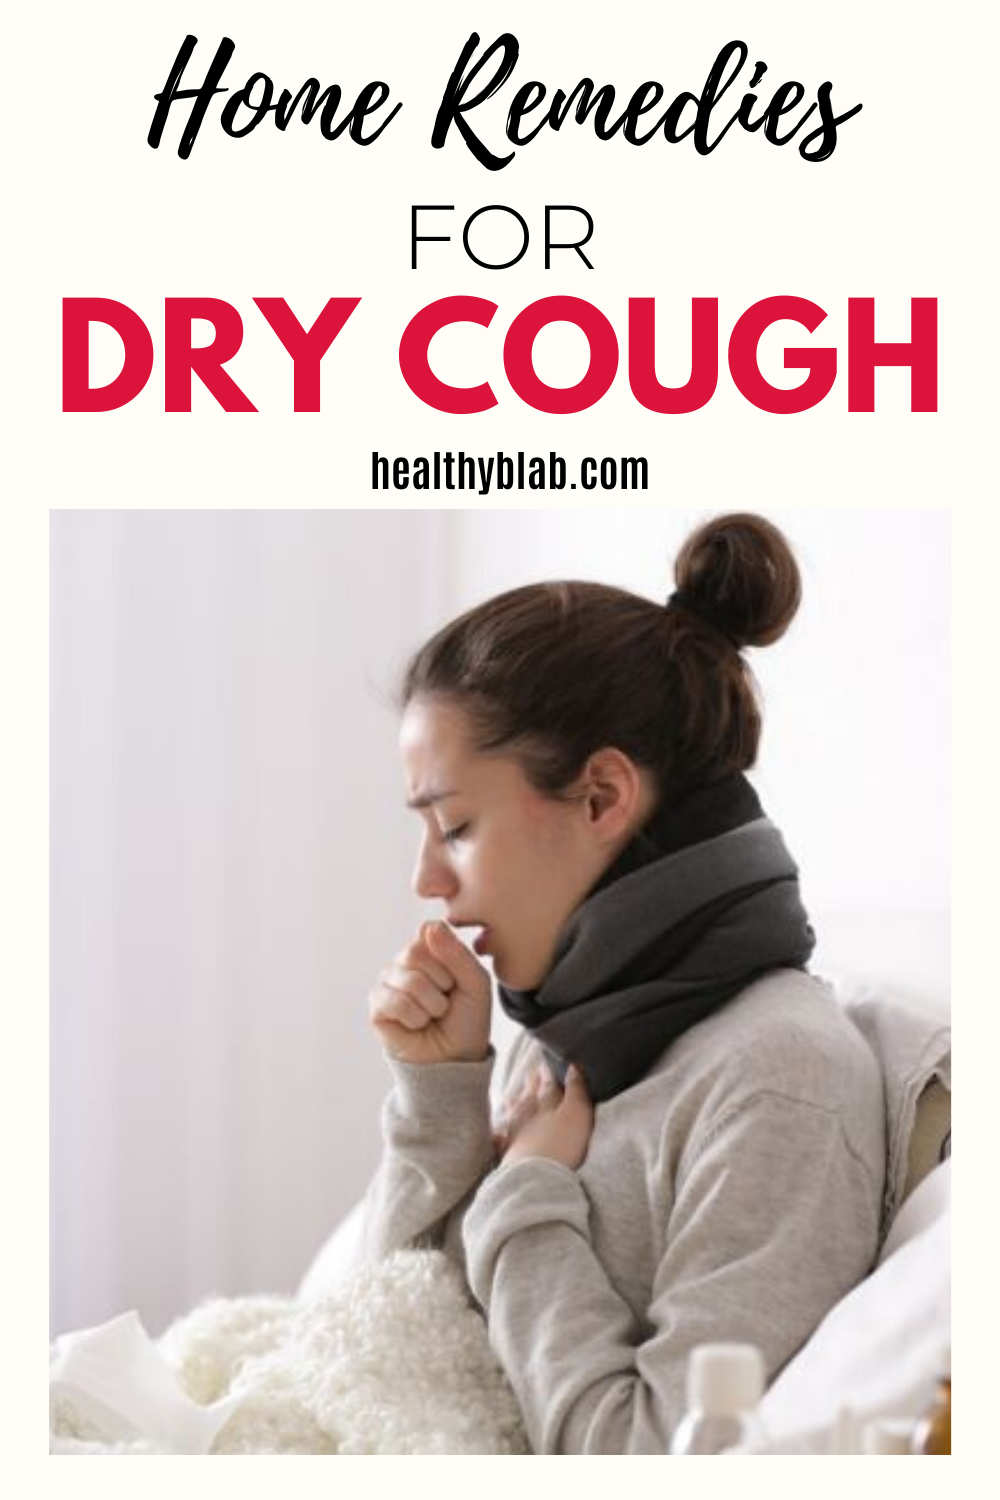 8 Home Remedies for Dry Cough in 2020